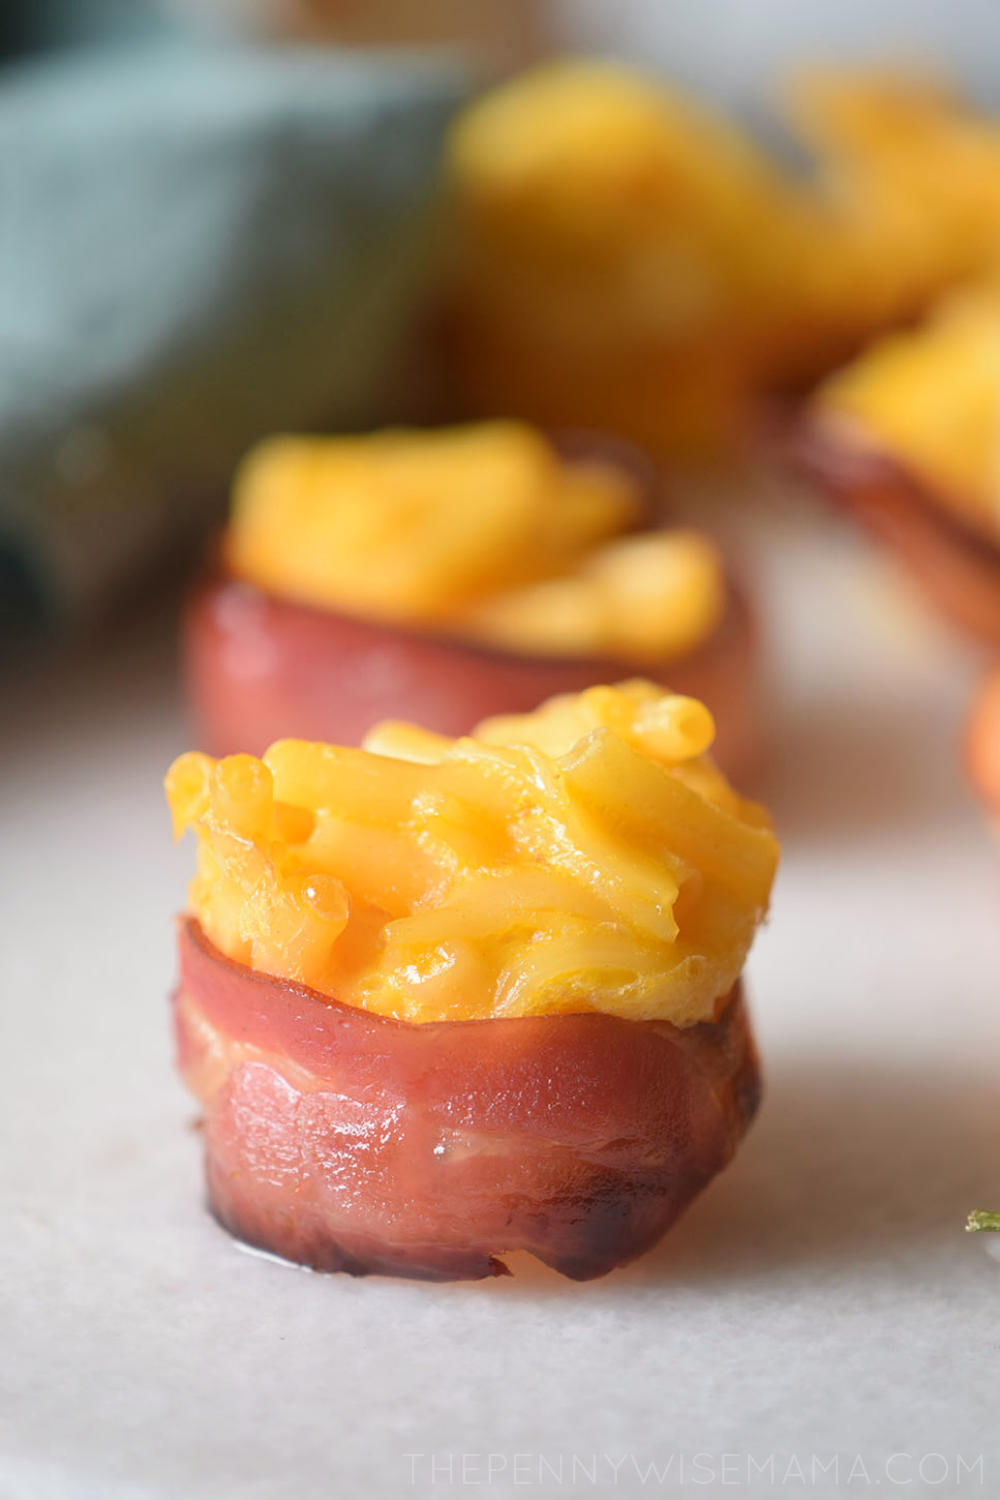 Bacon-Wrapped Mac & Cheese Bites - yummy snack or appetizer!